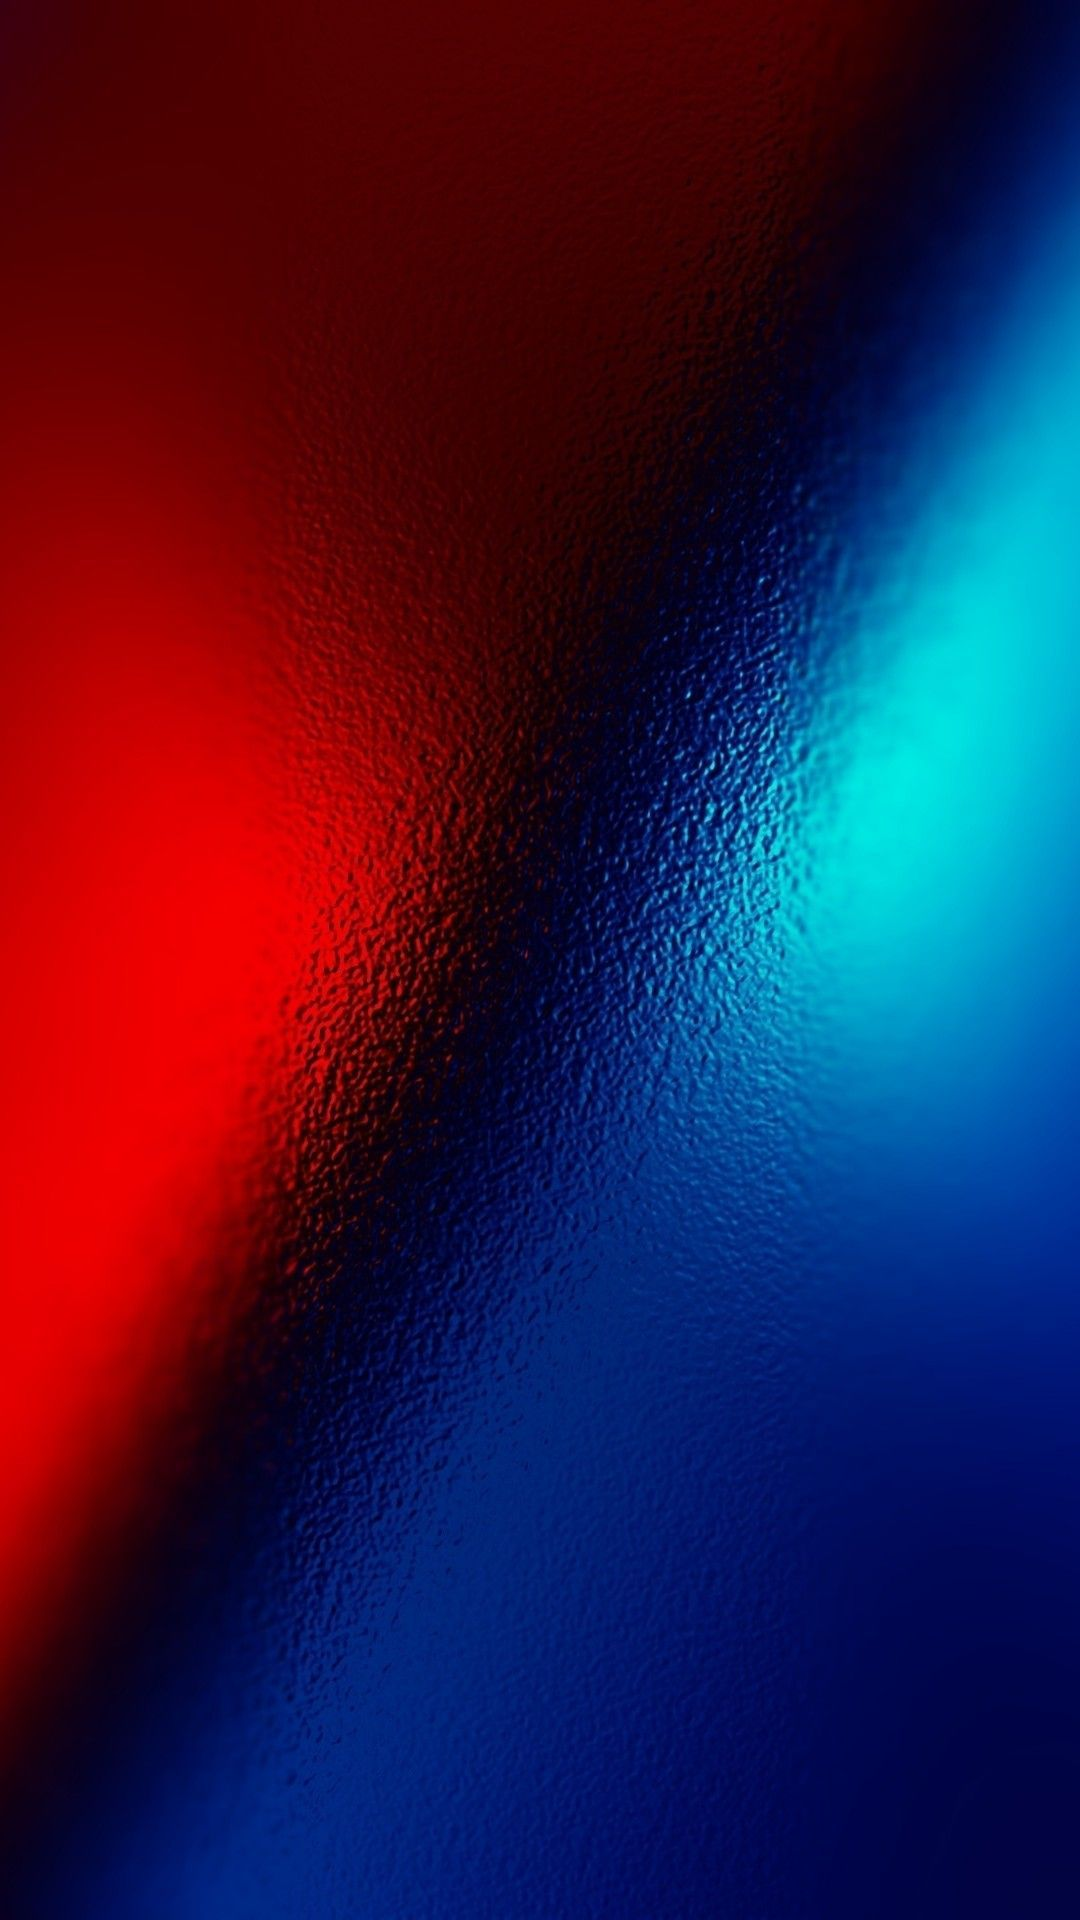 Blue Red Iphone Wallpaper In 2020 Android Wallpaper Red Abstract Iphone Wallpaper Huawei Wallpapers